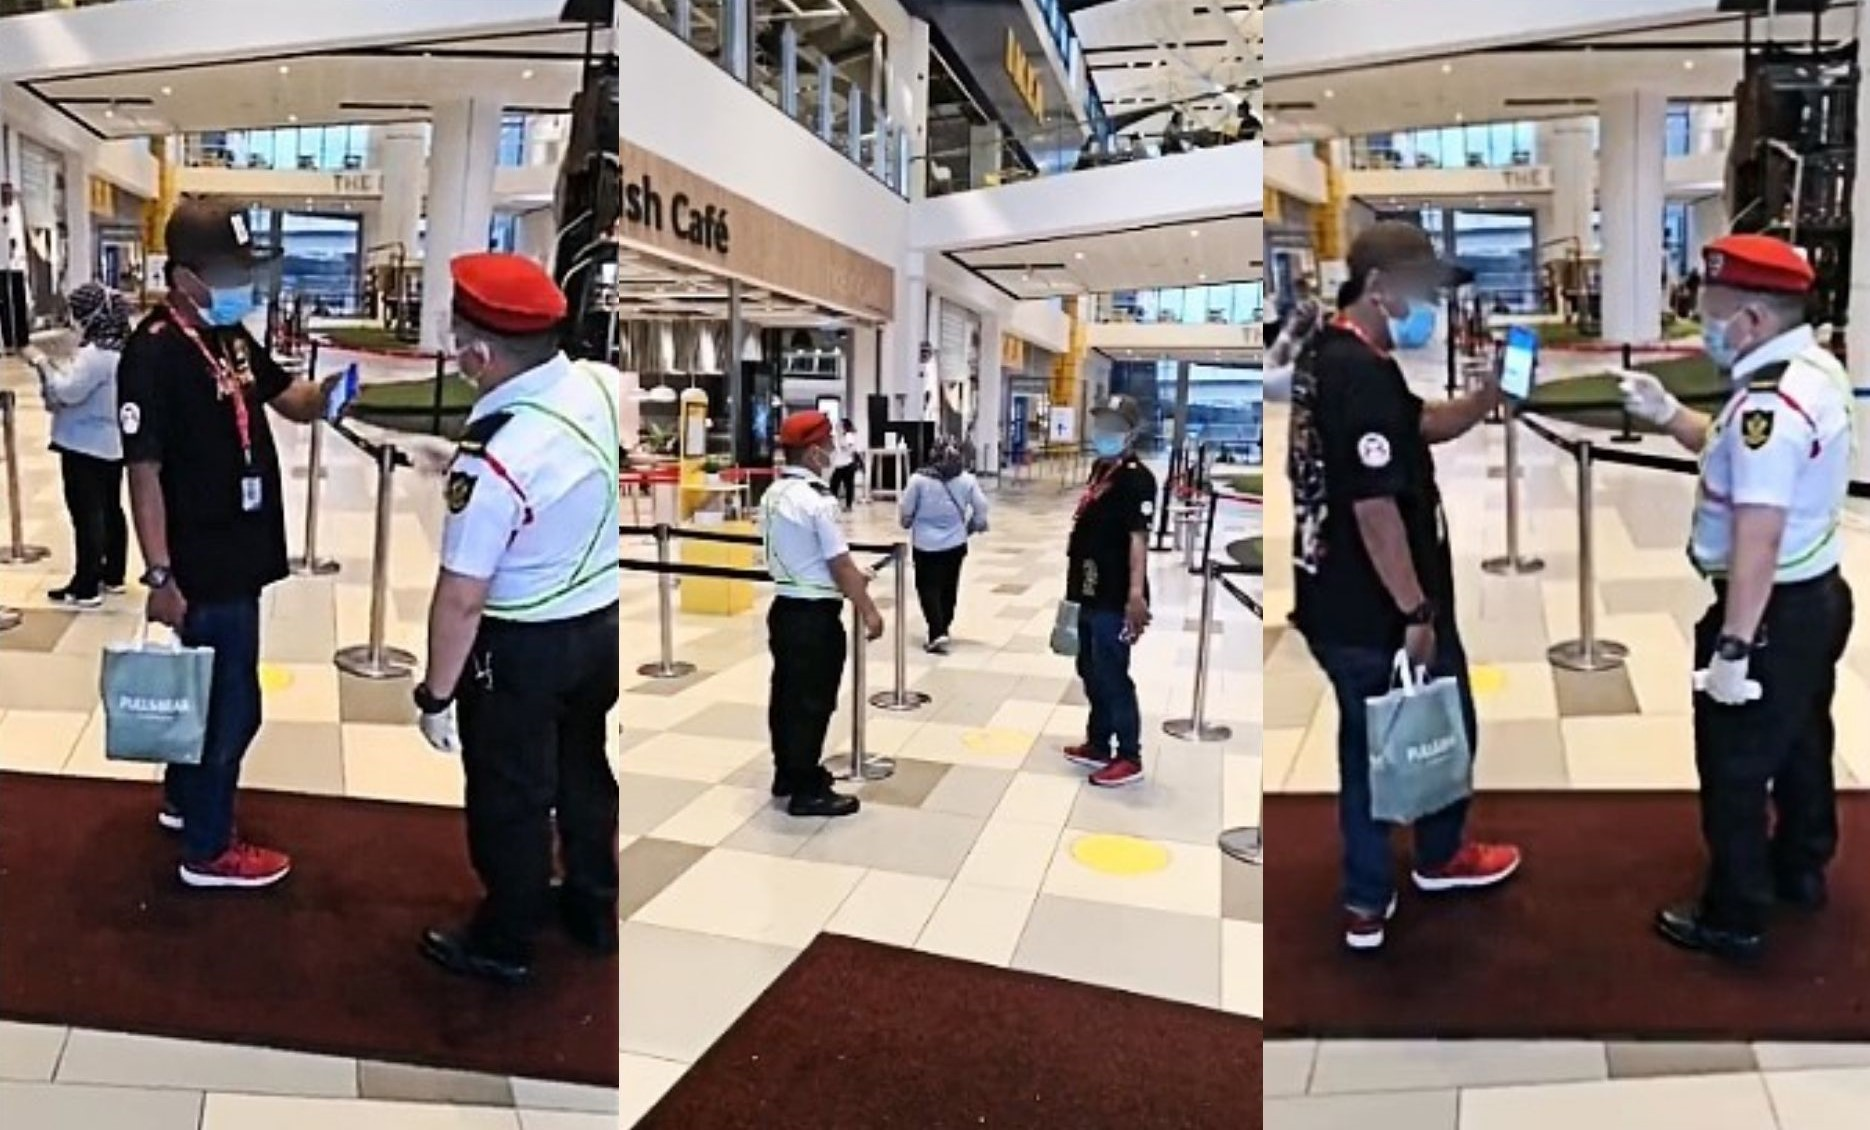 Viral: Man Refuses To Declare Vaccination And Walks Straight Into KL Mall